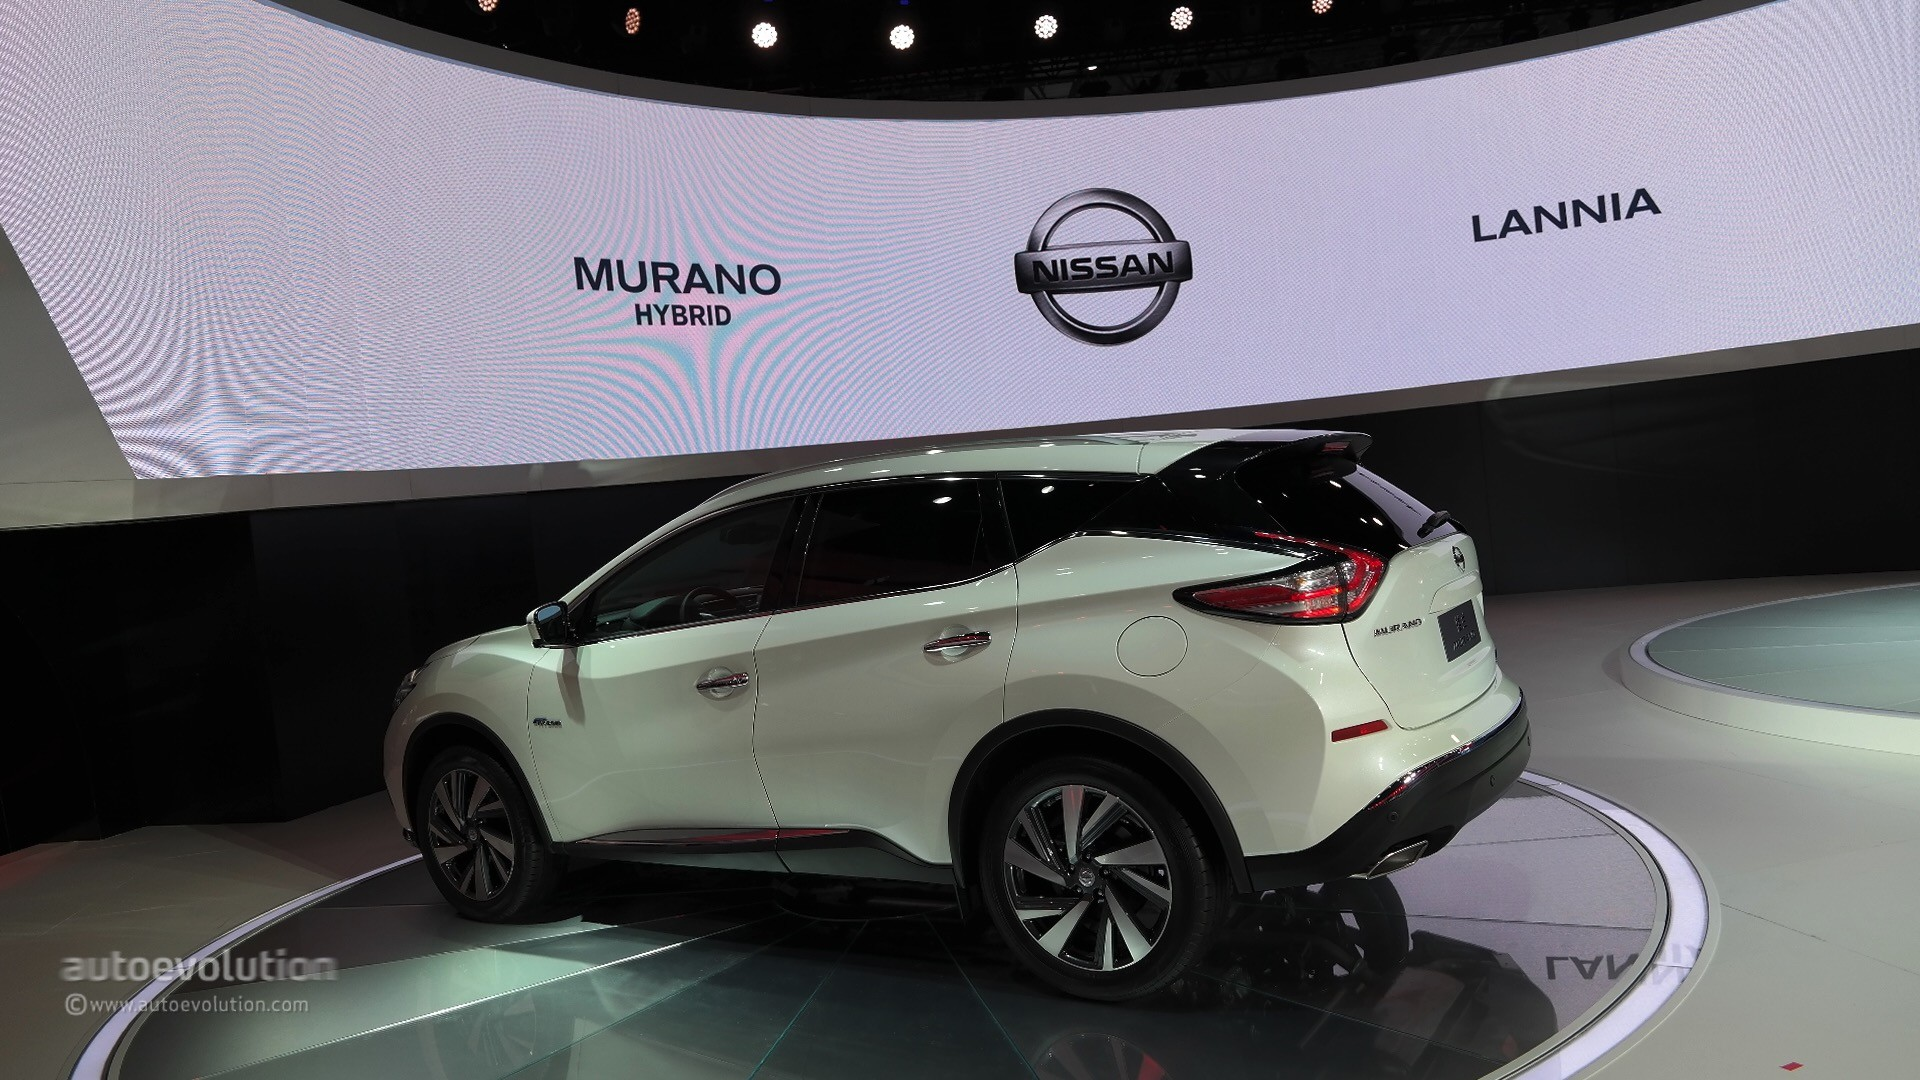 Patrol Nismo >> World Premiere for 2016 Nissan Murano Hybrid at Auto Shanghai 2015 - autoevolution